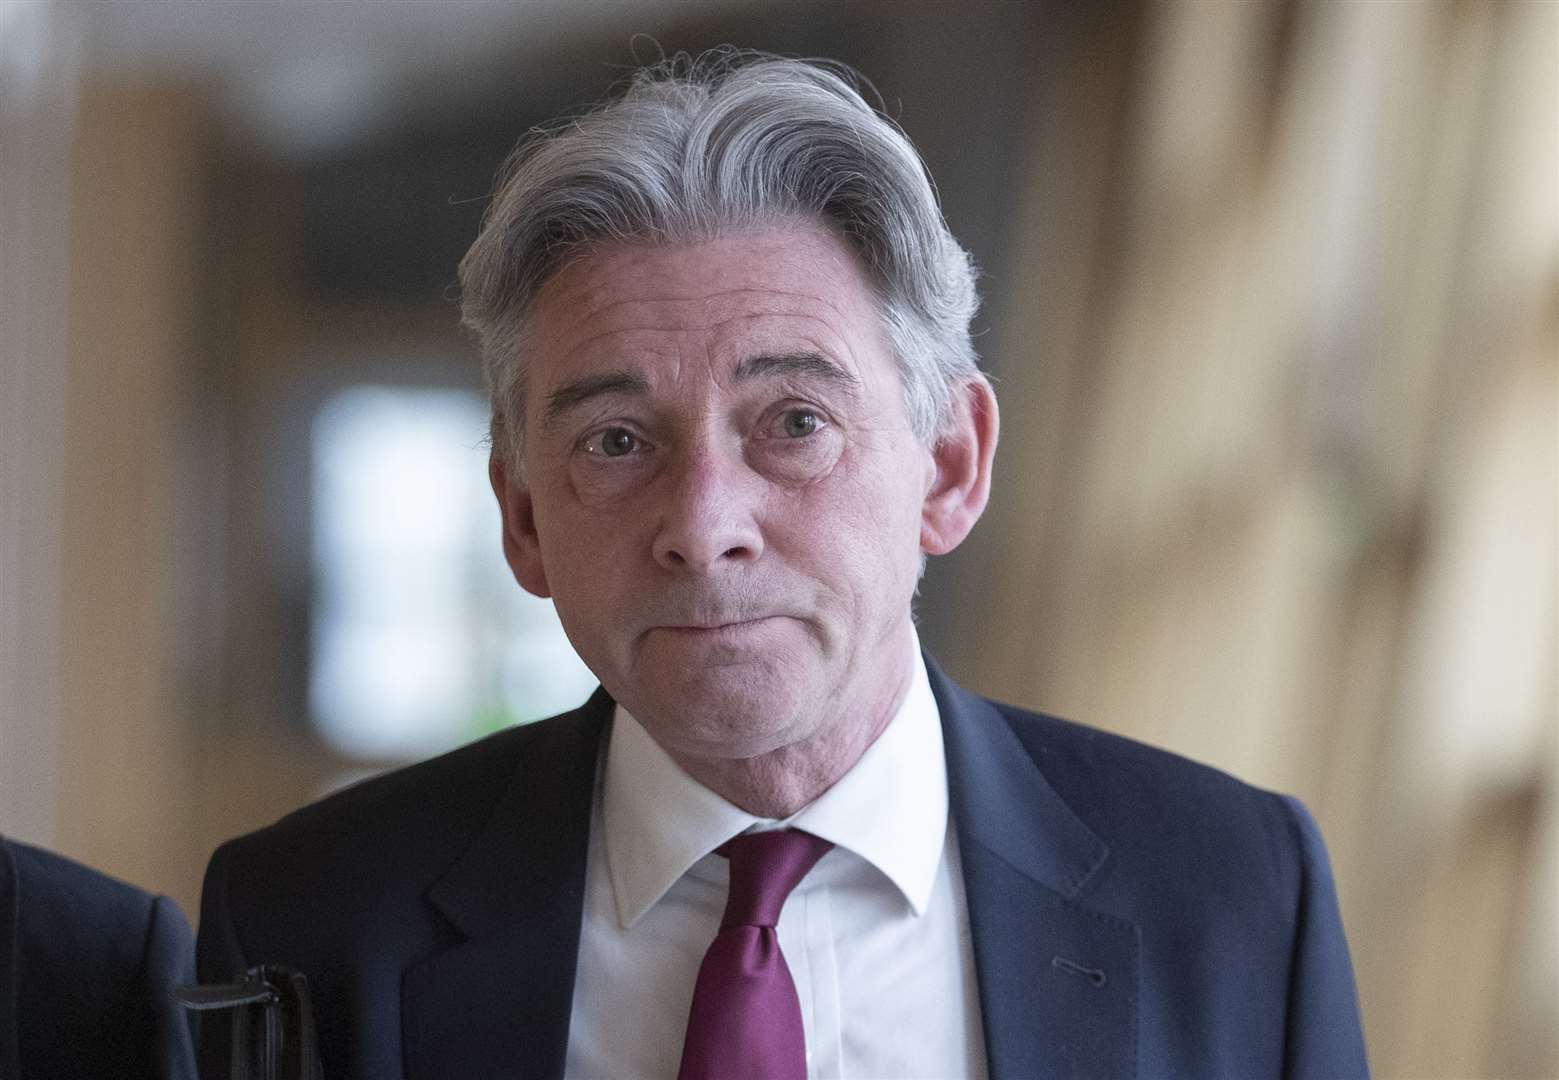 Labour leader Richard Leonard said his party will select a candidate 'within weeks' (Jane Barlow/PA)